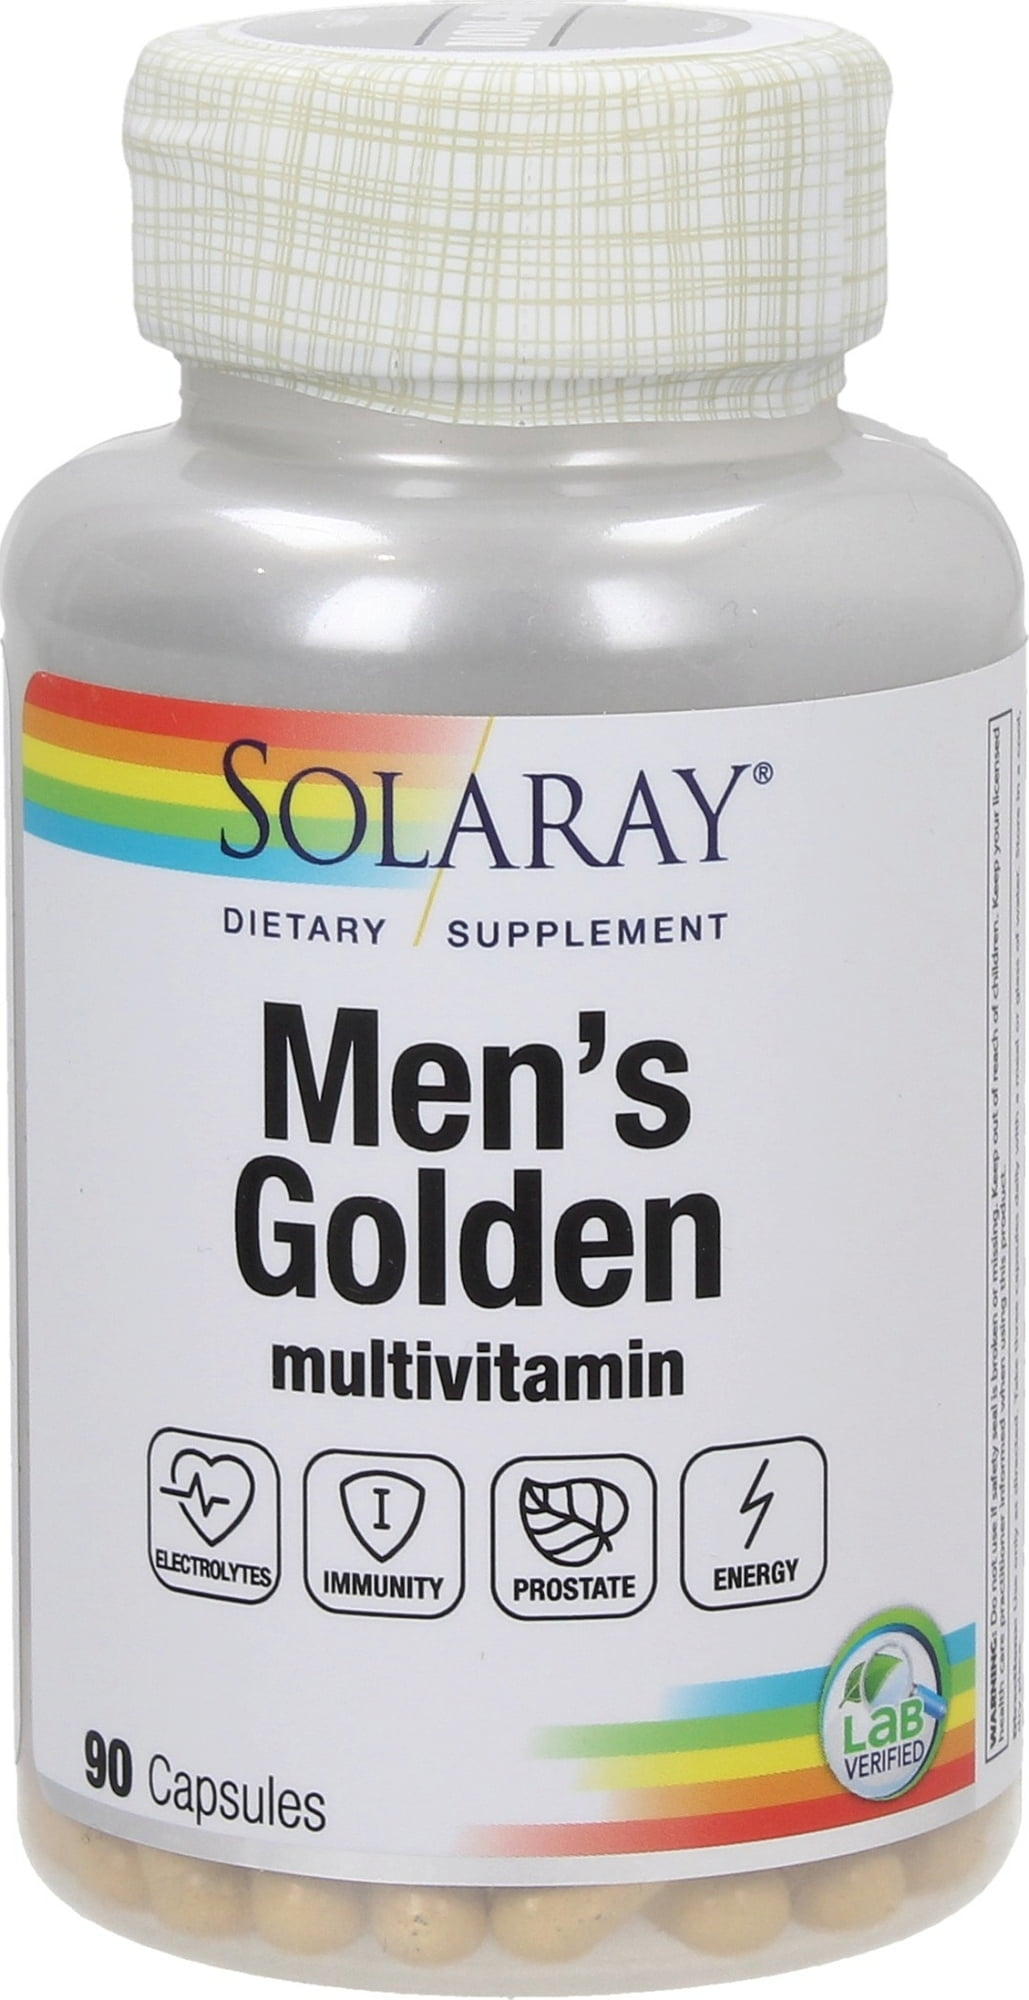 Solaray Men's Golden Vitamins - 90 Kapseln von Solaray